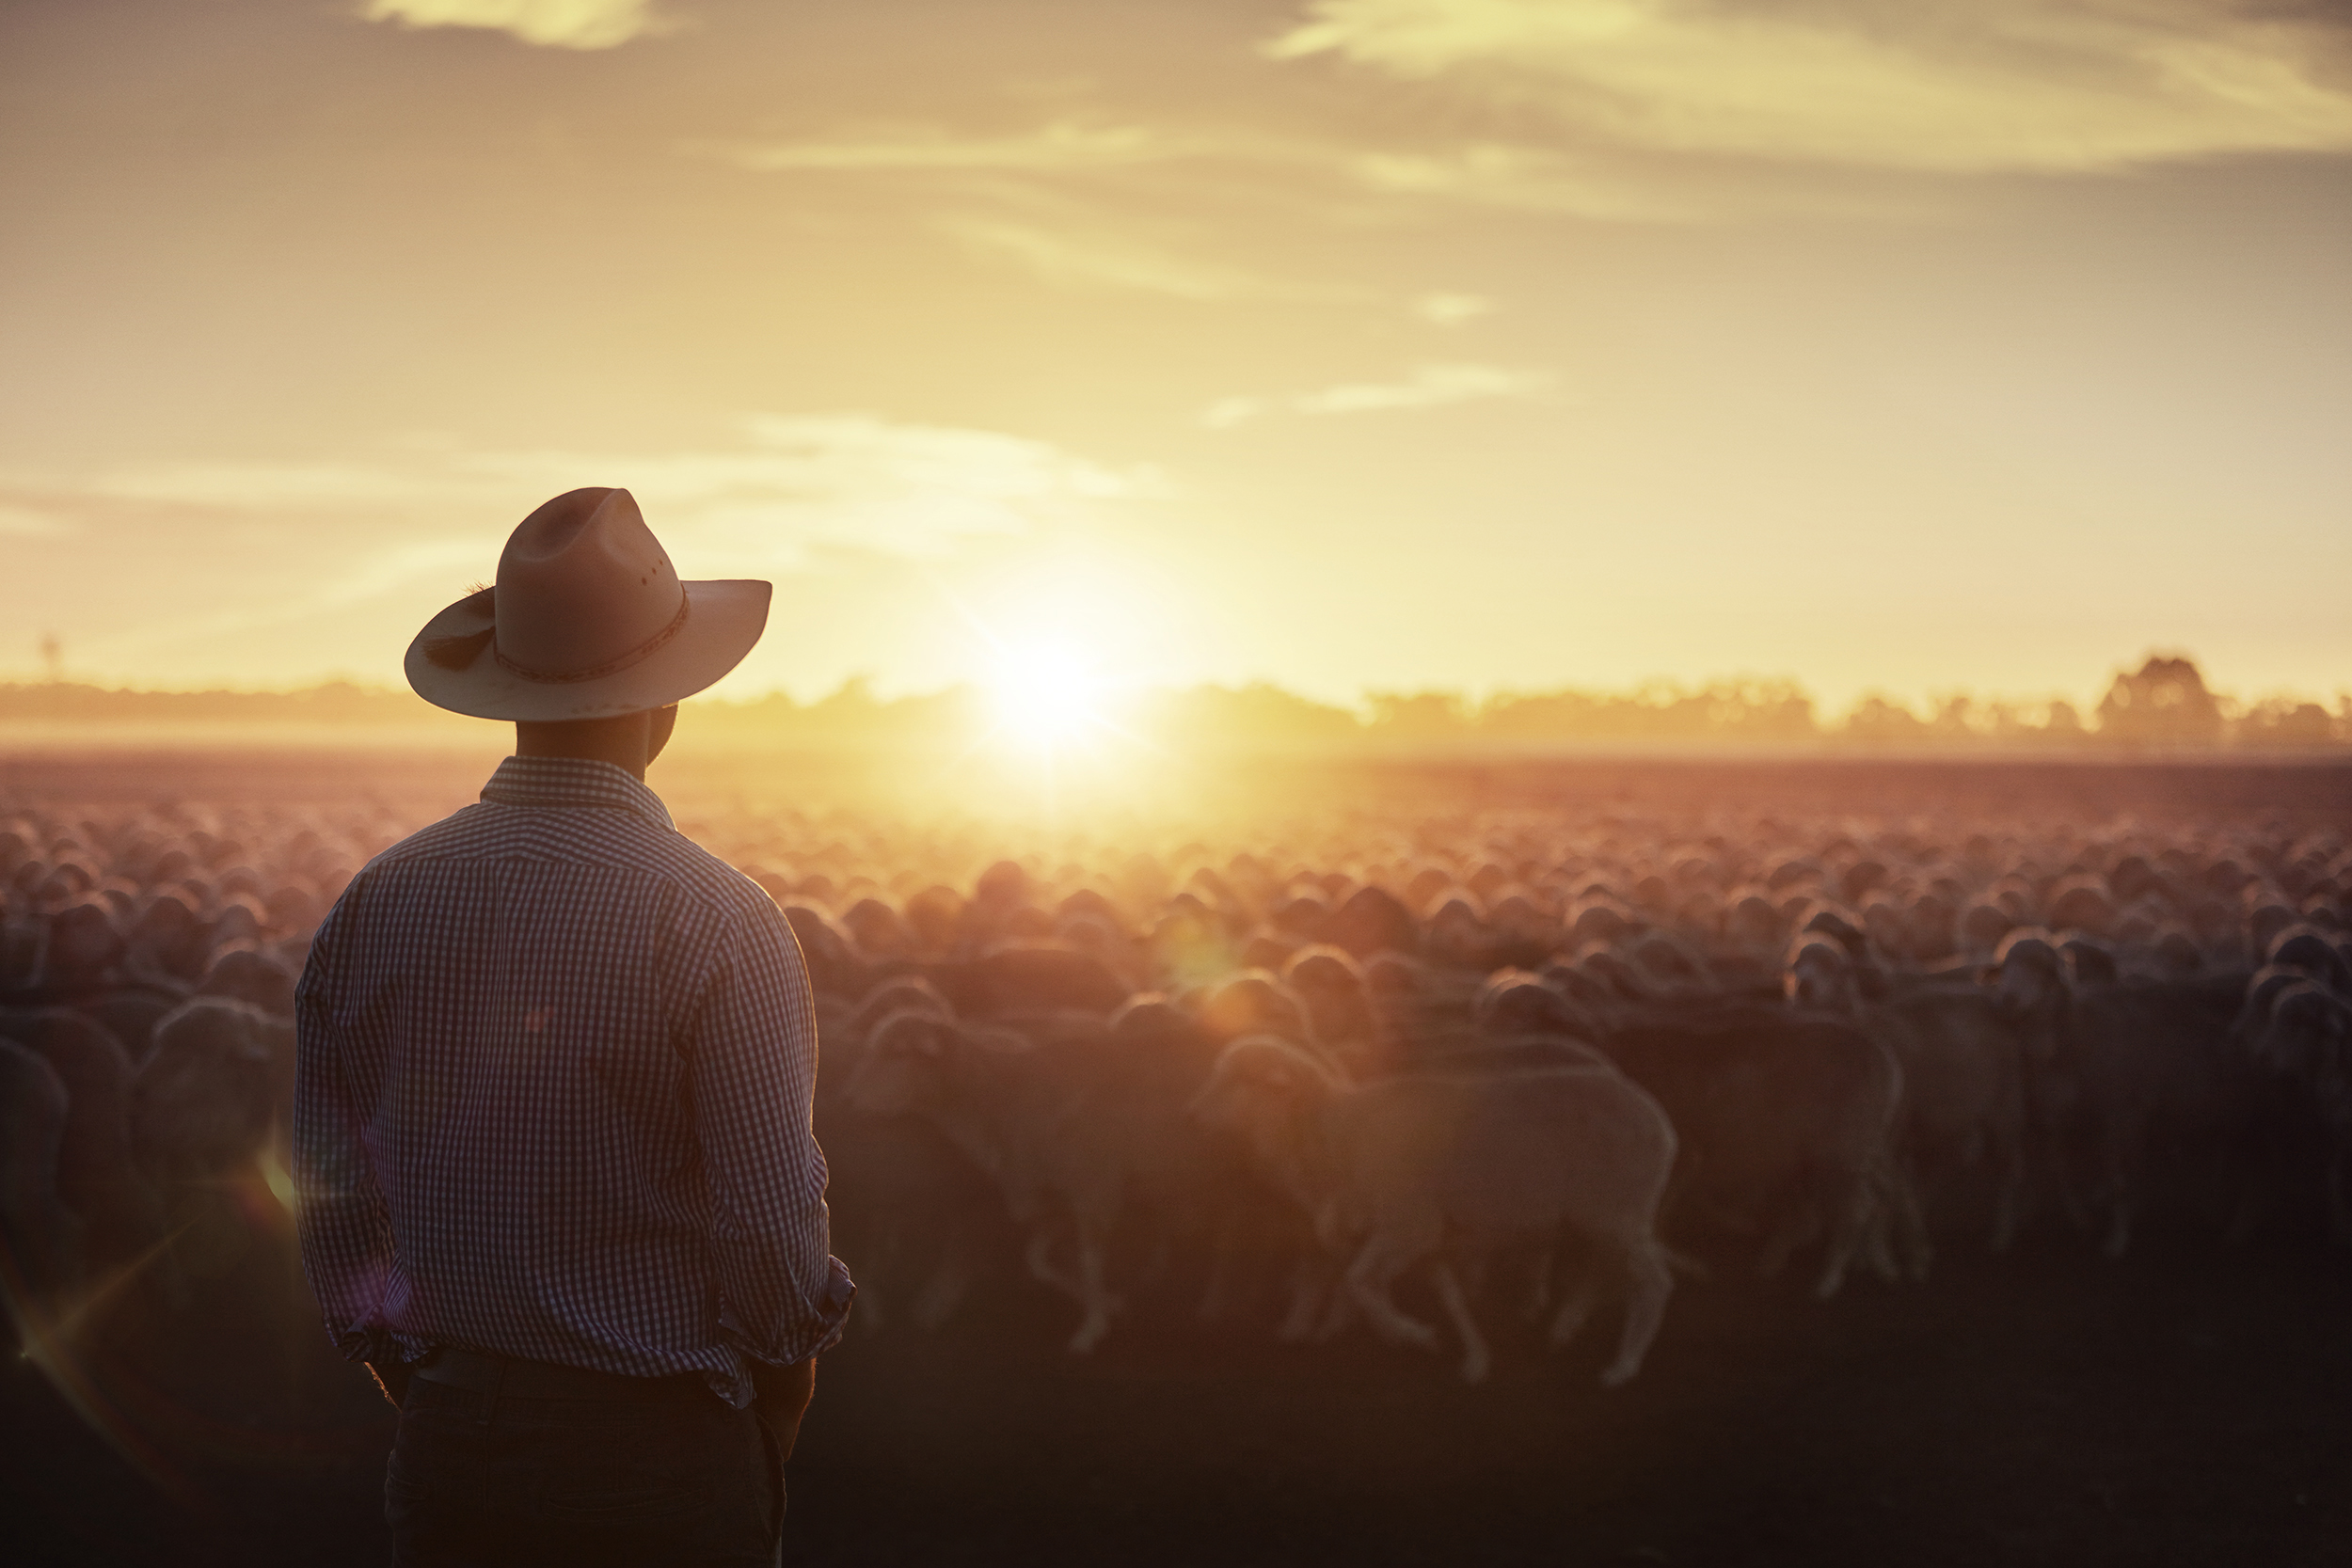 farmers-thom-rigney-professional-photographer-bayer-campaign-advertising-australia-006